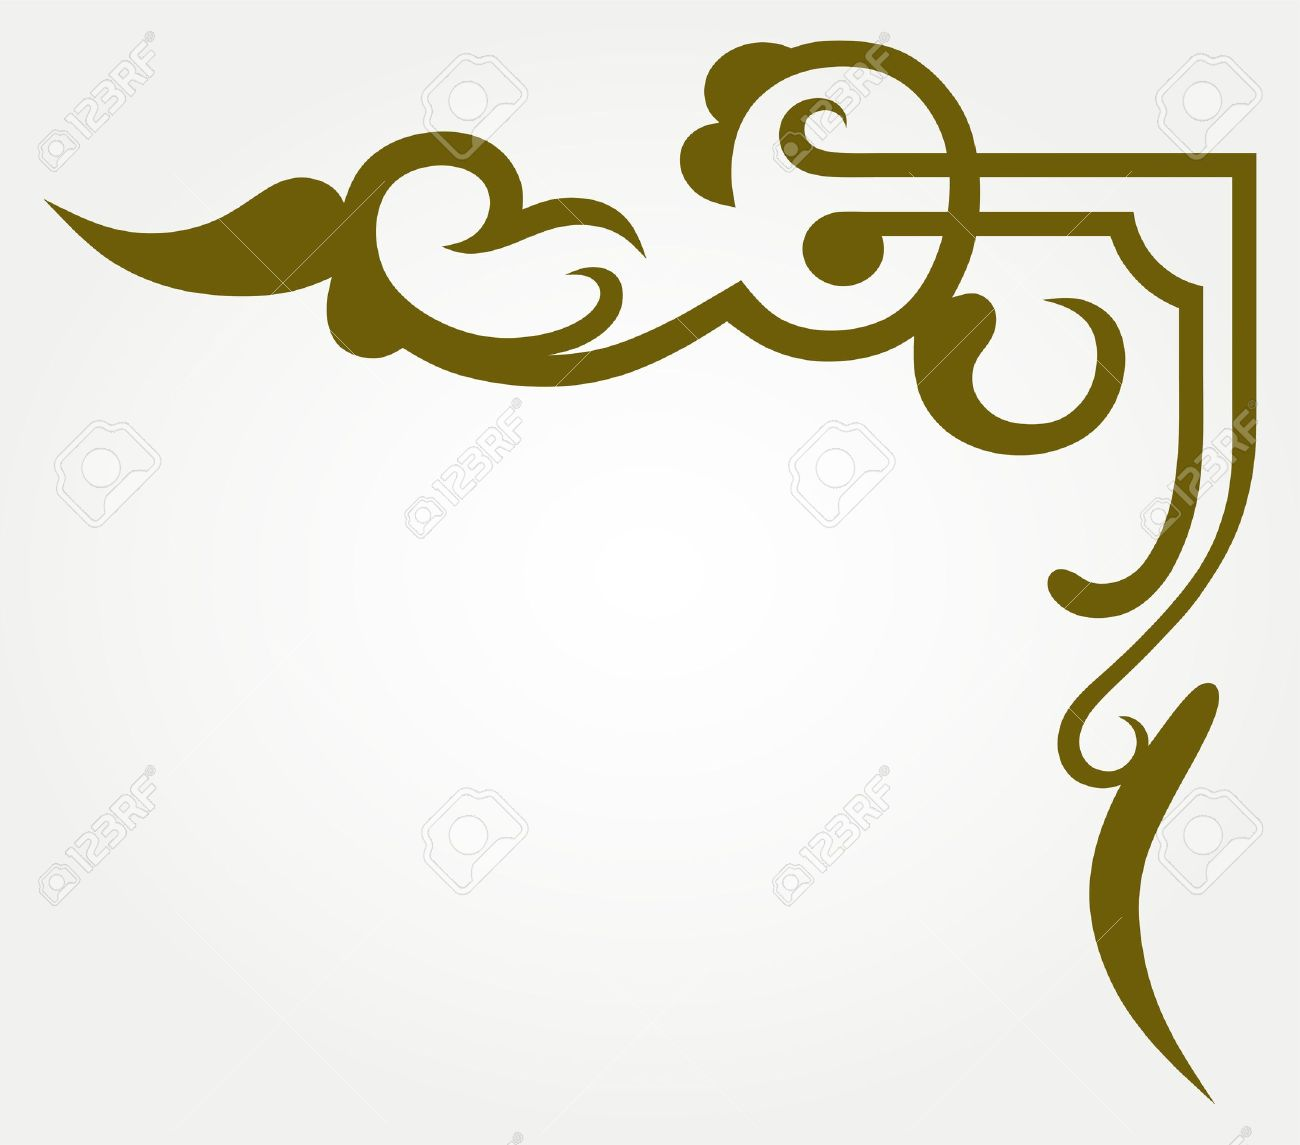 High Quality Corner Design: Calligraphic Design Element And Page Decoration